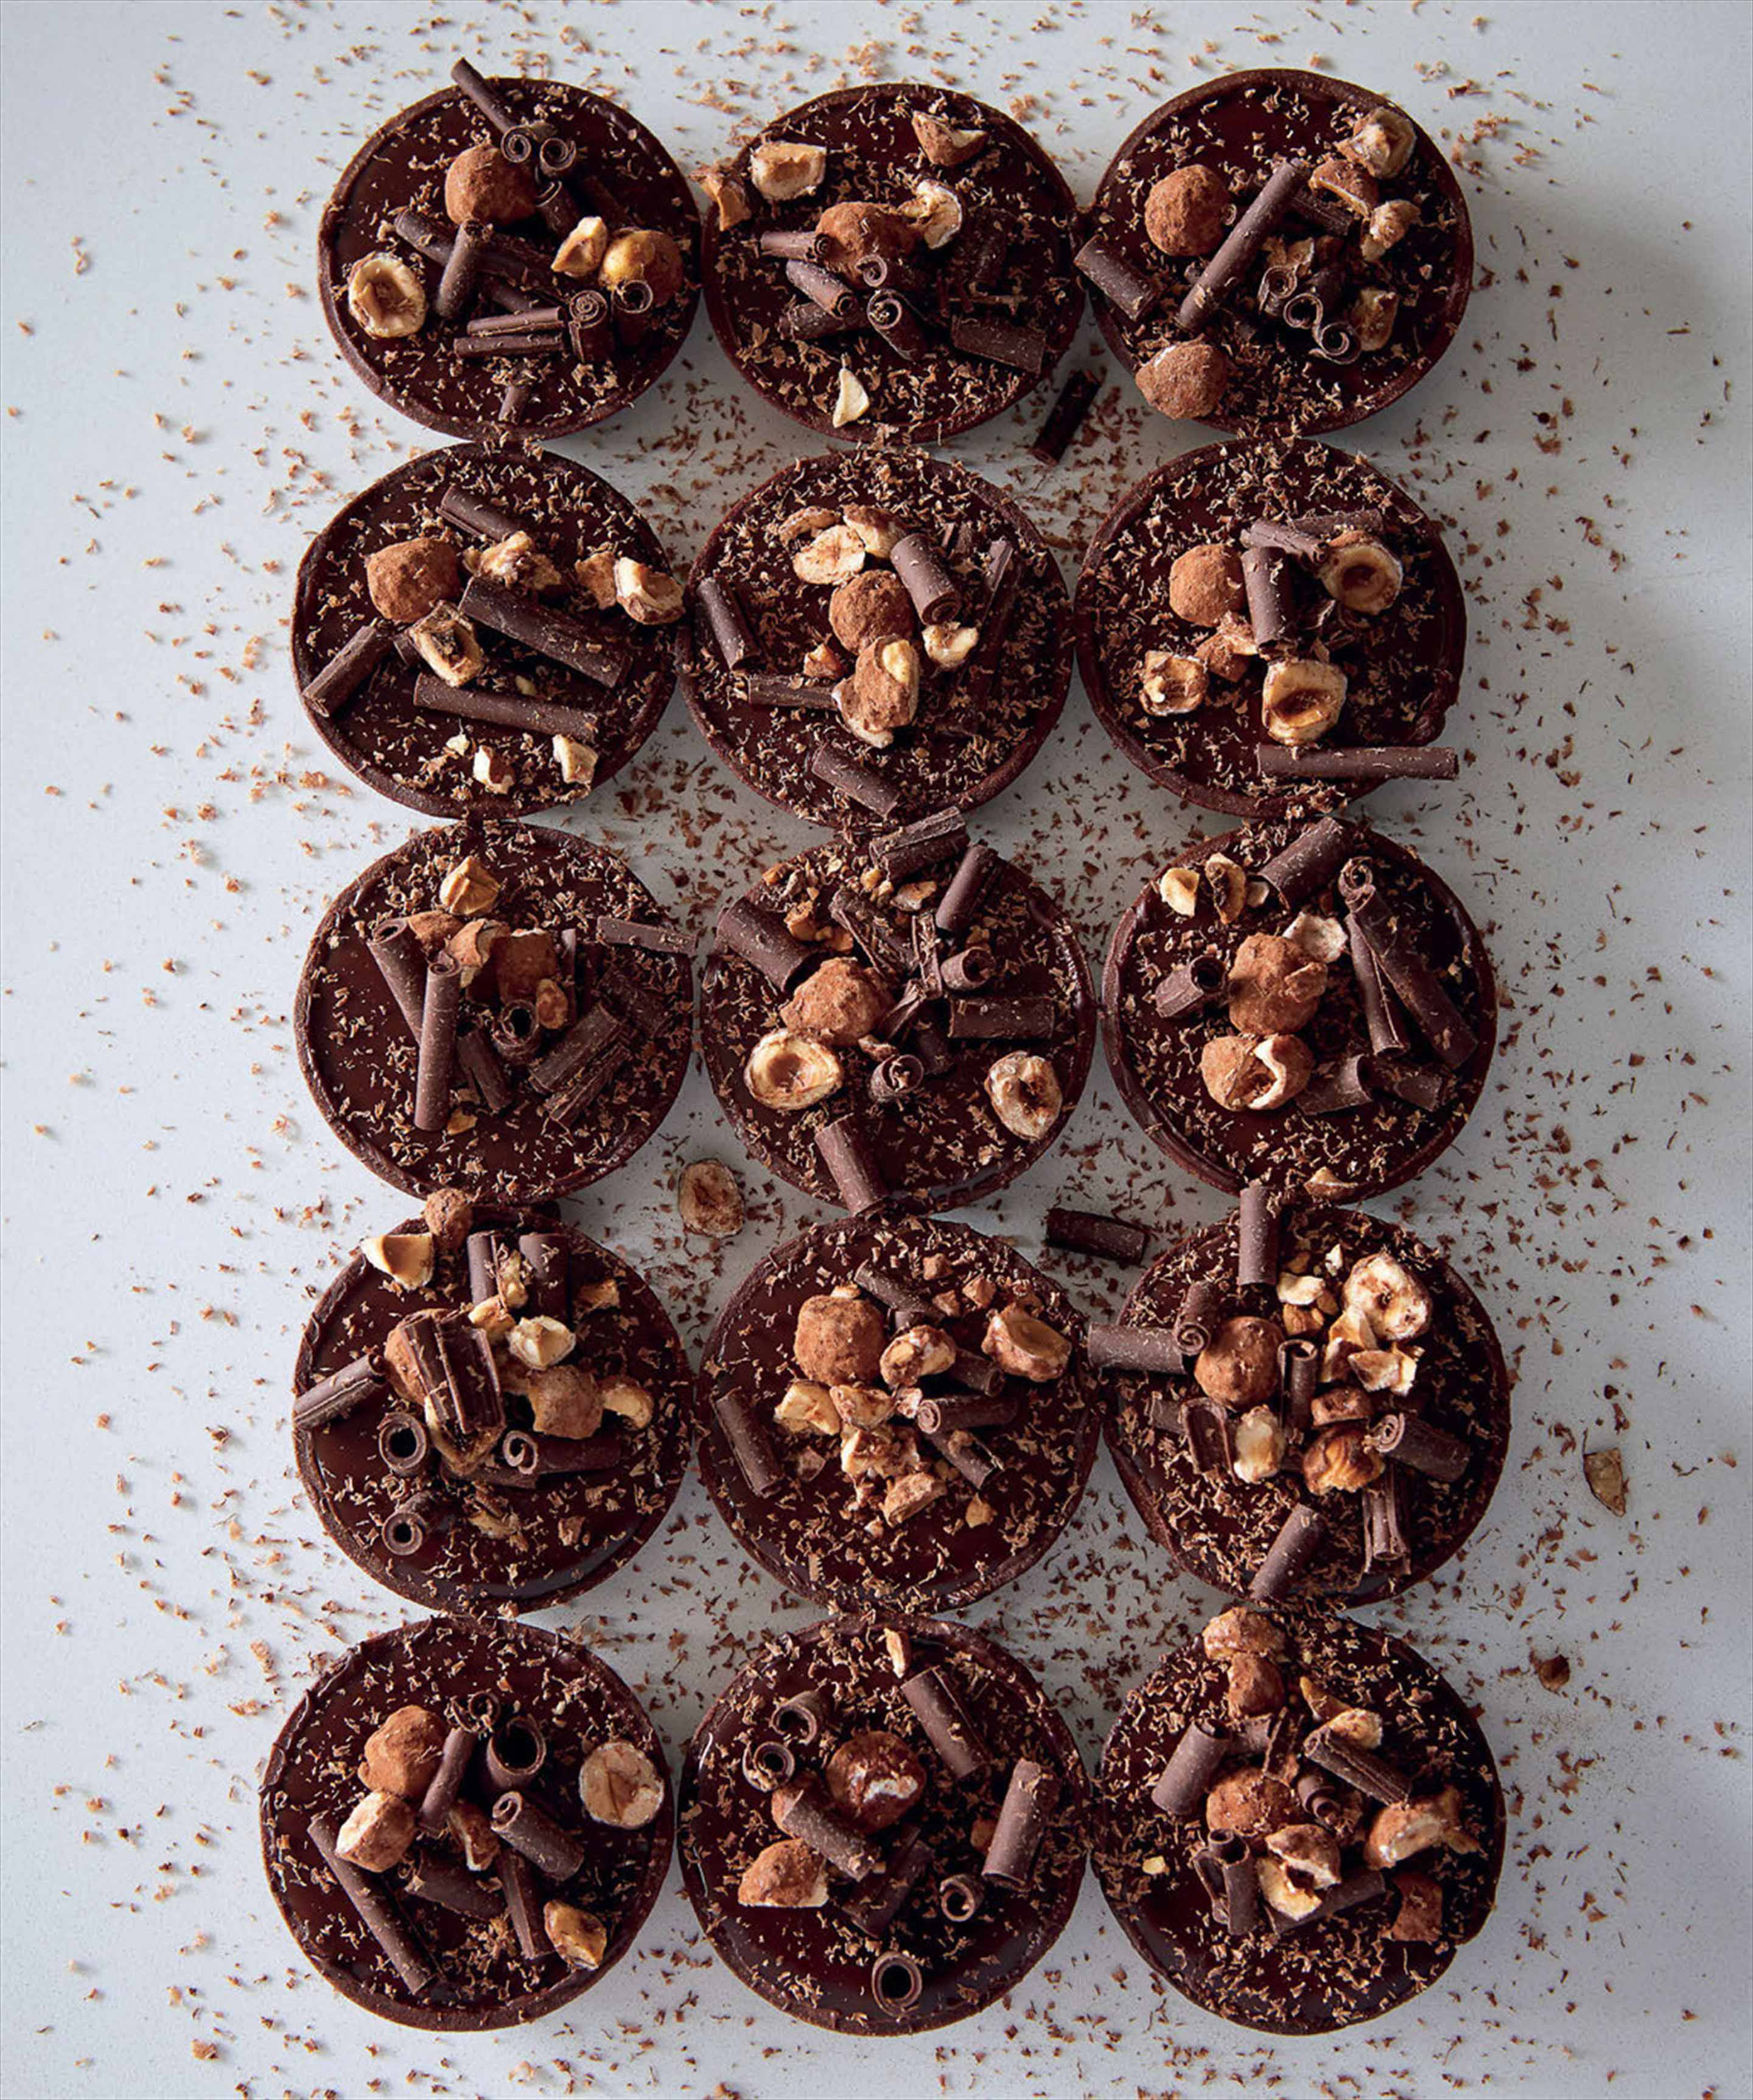 Chocolate and salted caramel tarts with caramelised hazelnuts